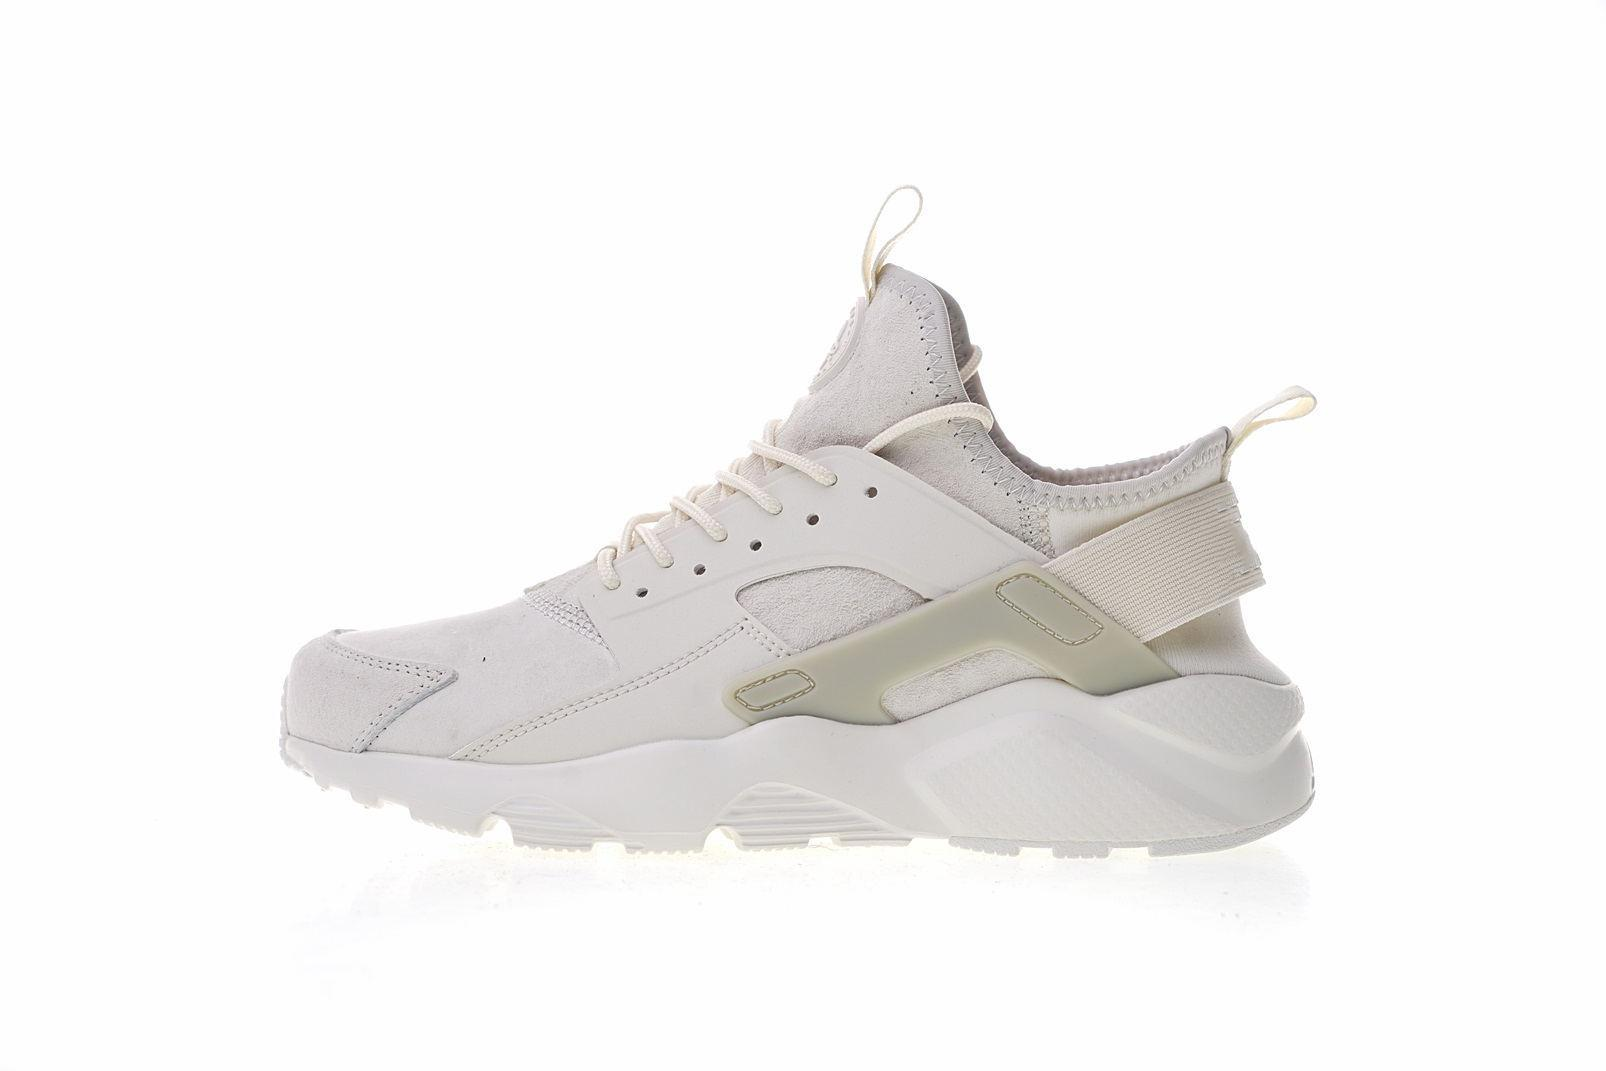 1c1fa1d80 2018 High Quality AIR Huarache 4 Ultra ID Retro Jogging Shoes Man Women  White Green Size 36-45 Sport Sneakers Online with  61.08 Pair on  Shxcdppzc s Store ...